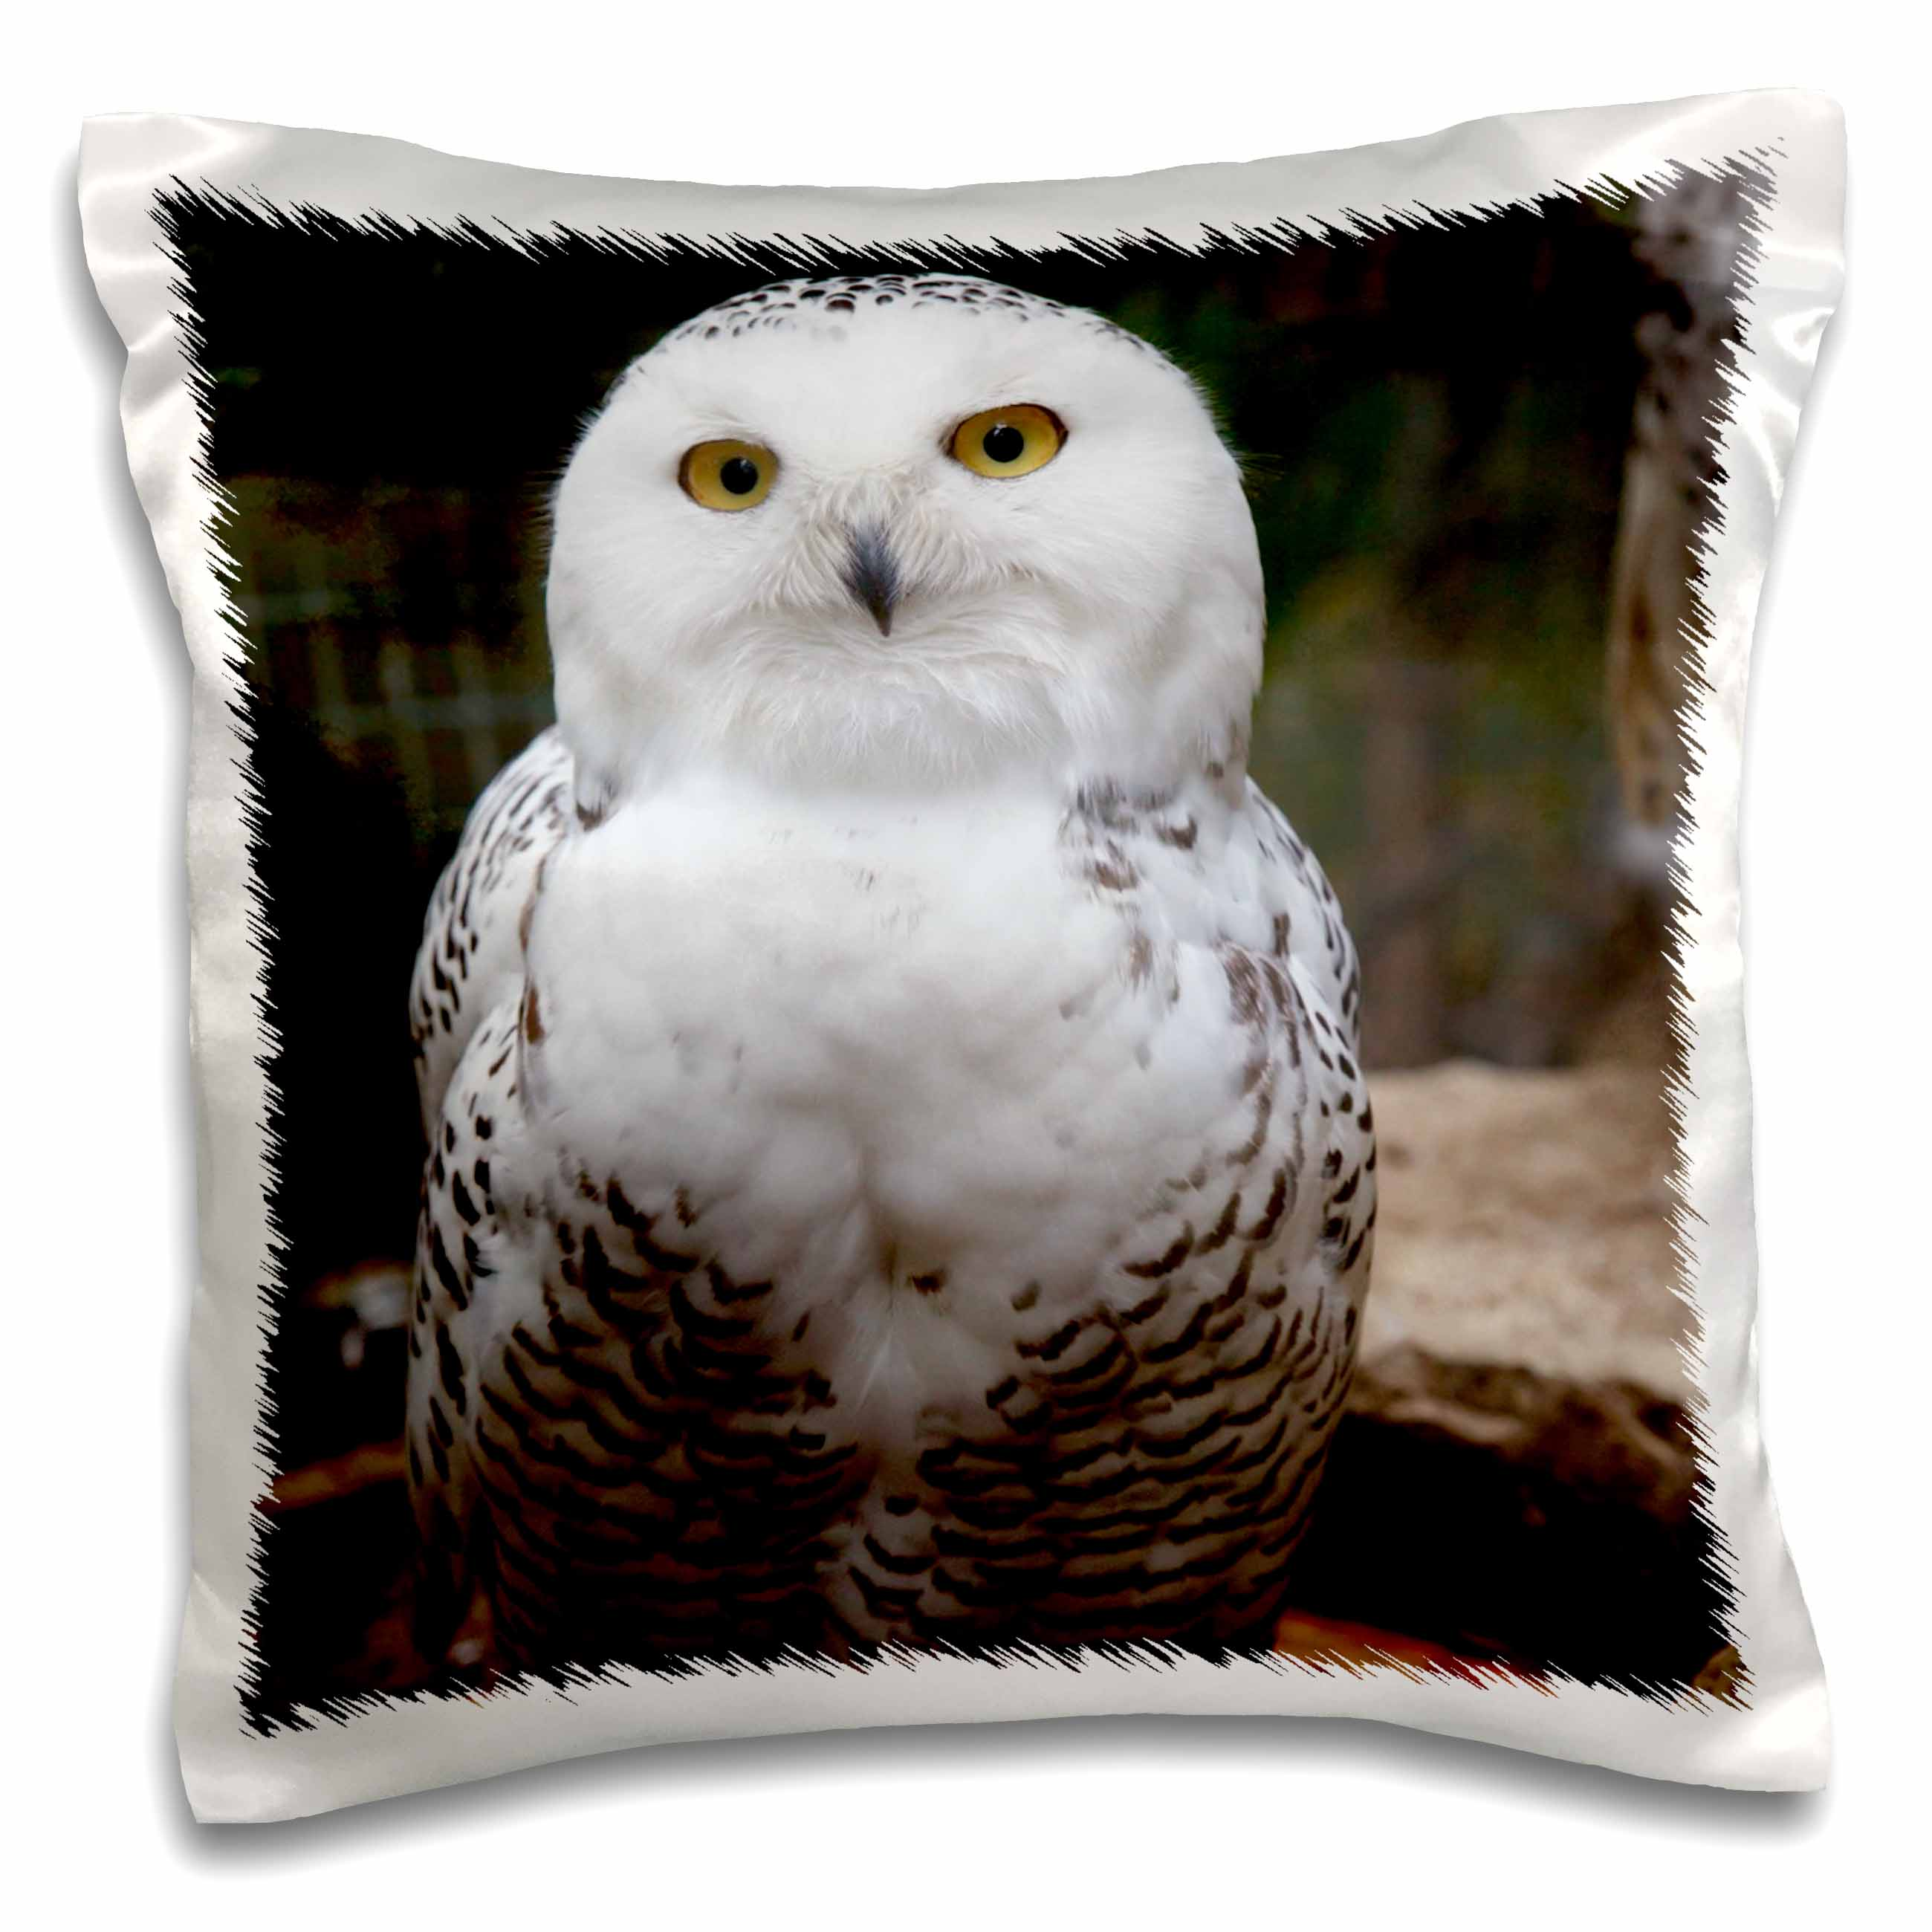 3dRose Pretty White Snowy Owl- Birds- Animals, Pillow Case, 16 by 16-inch